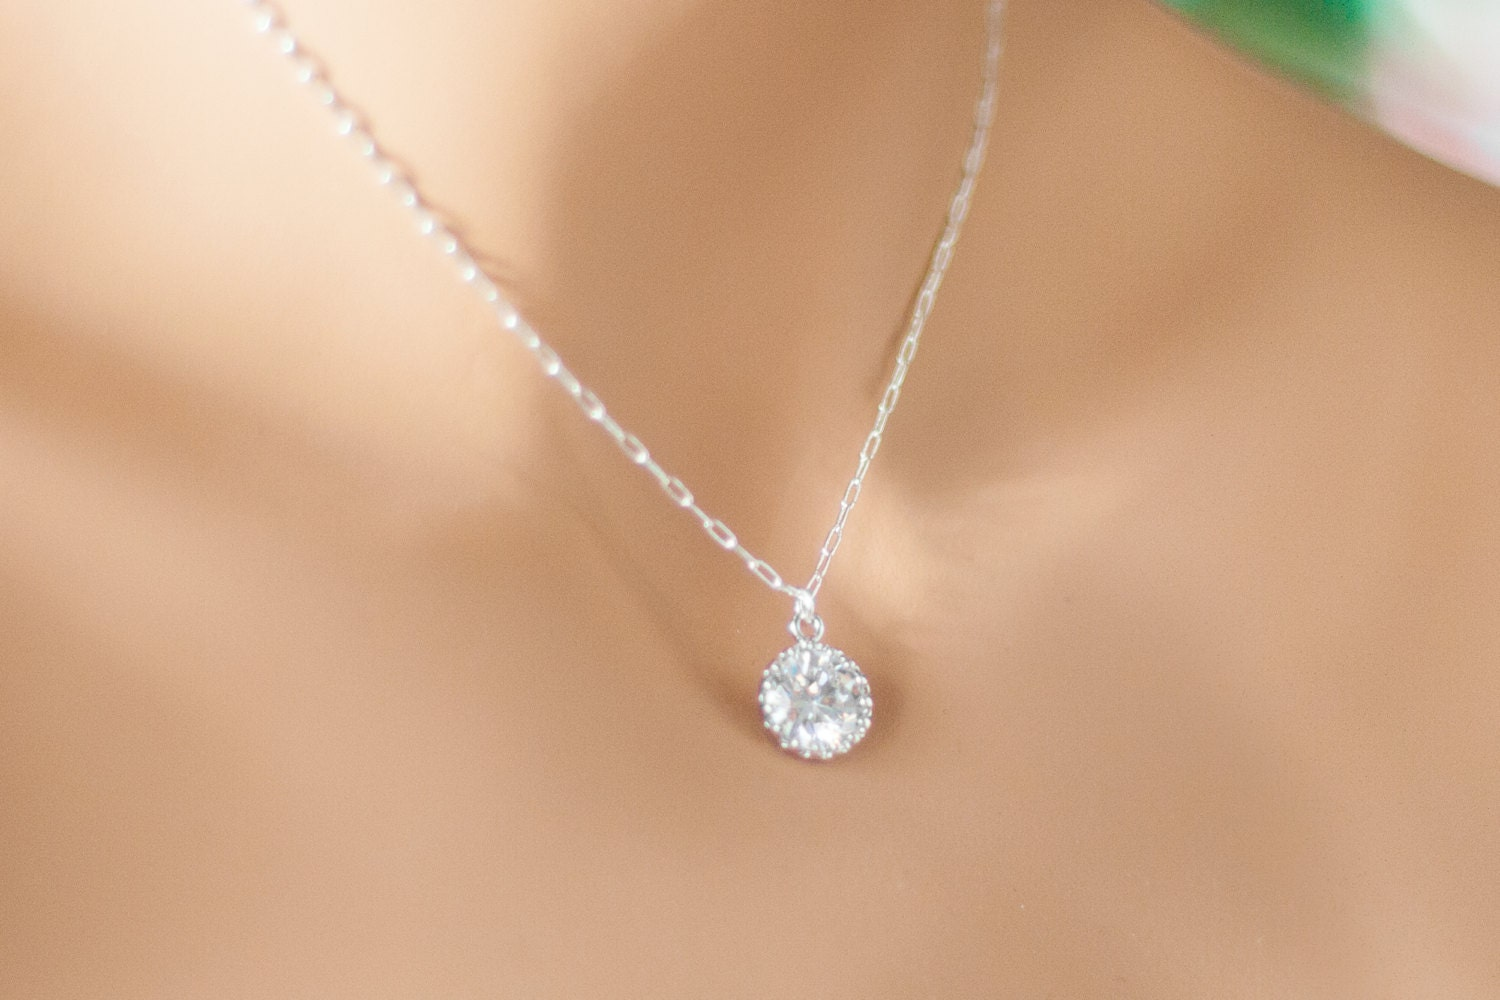 Single diamond necklace one stone necklace by elegantavenues single diamond necklace one stone necklace by elegantavenues image gallery mozeypictures Image collections